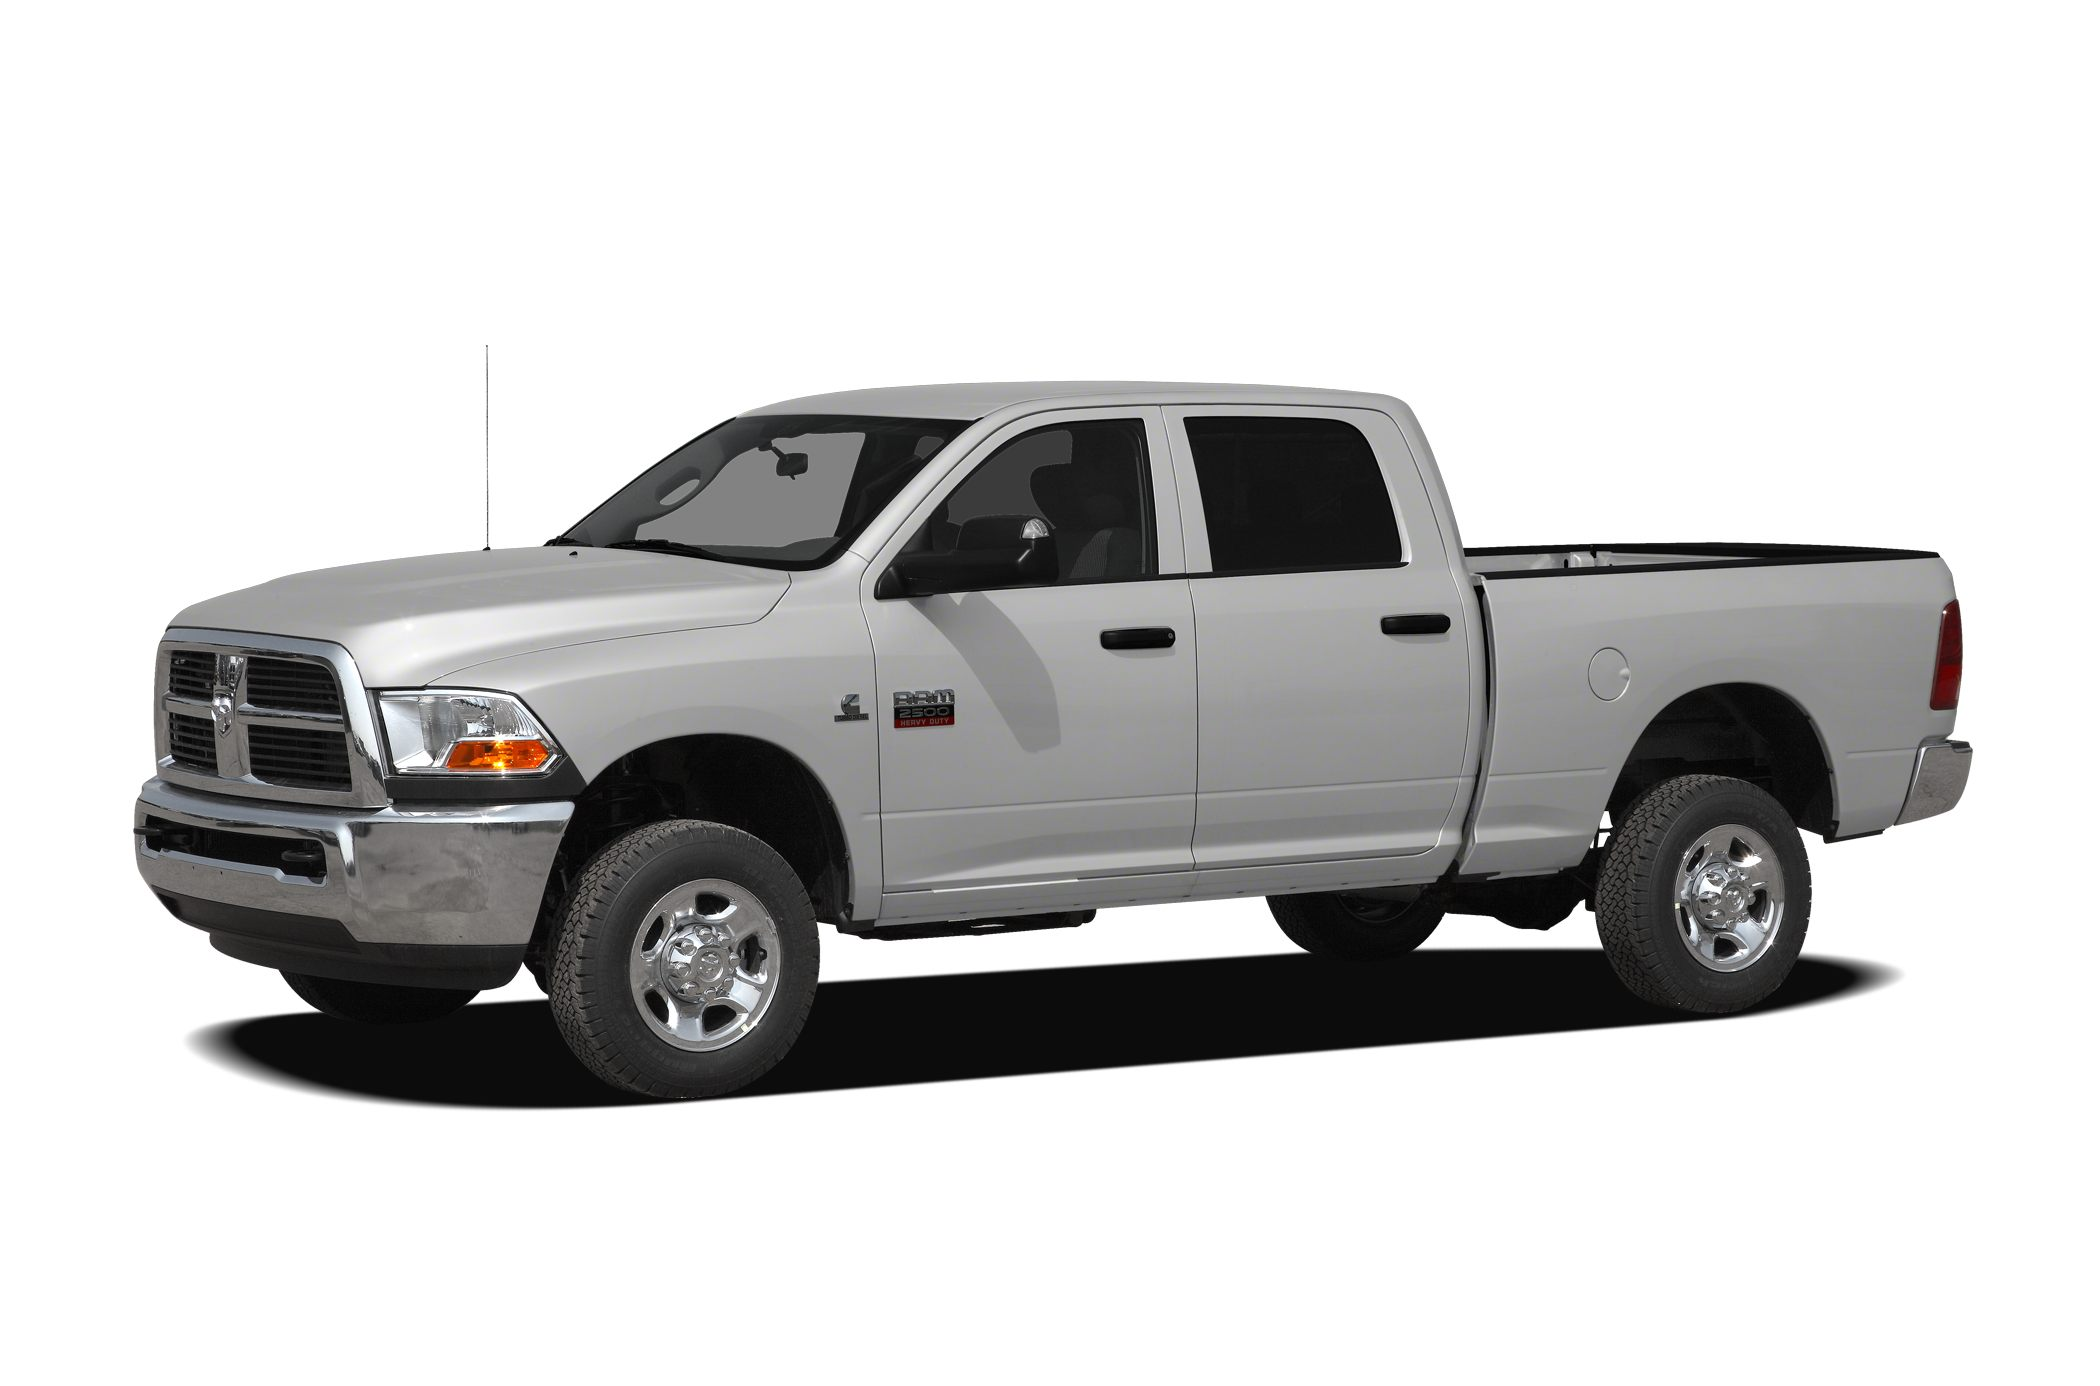 2010 Dodge Ram 2500 SLT Come see this 2010 Dodge Ram 2500 SLT It has a transmission and a Diesel